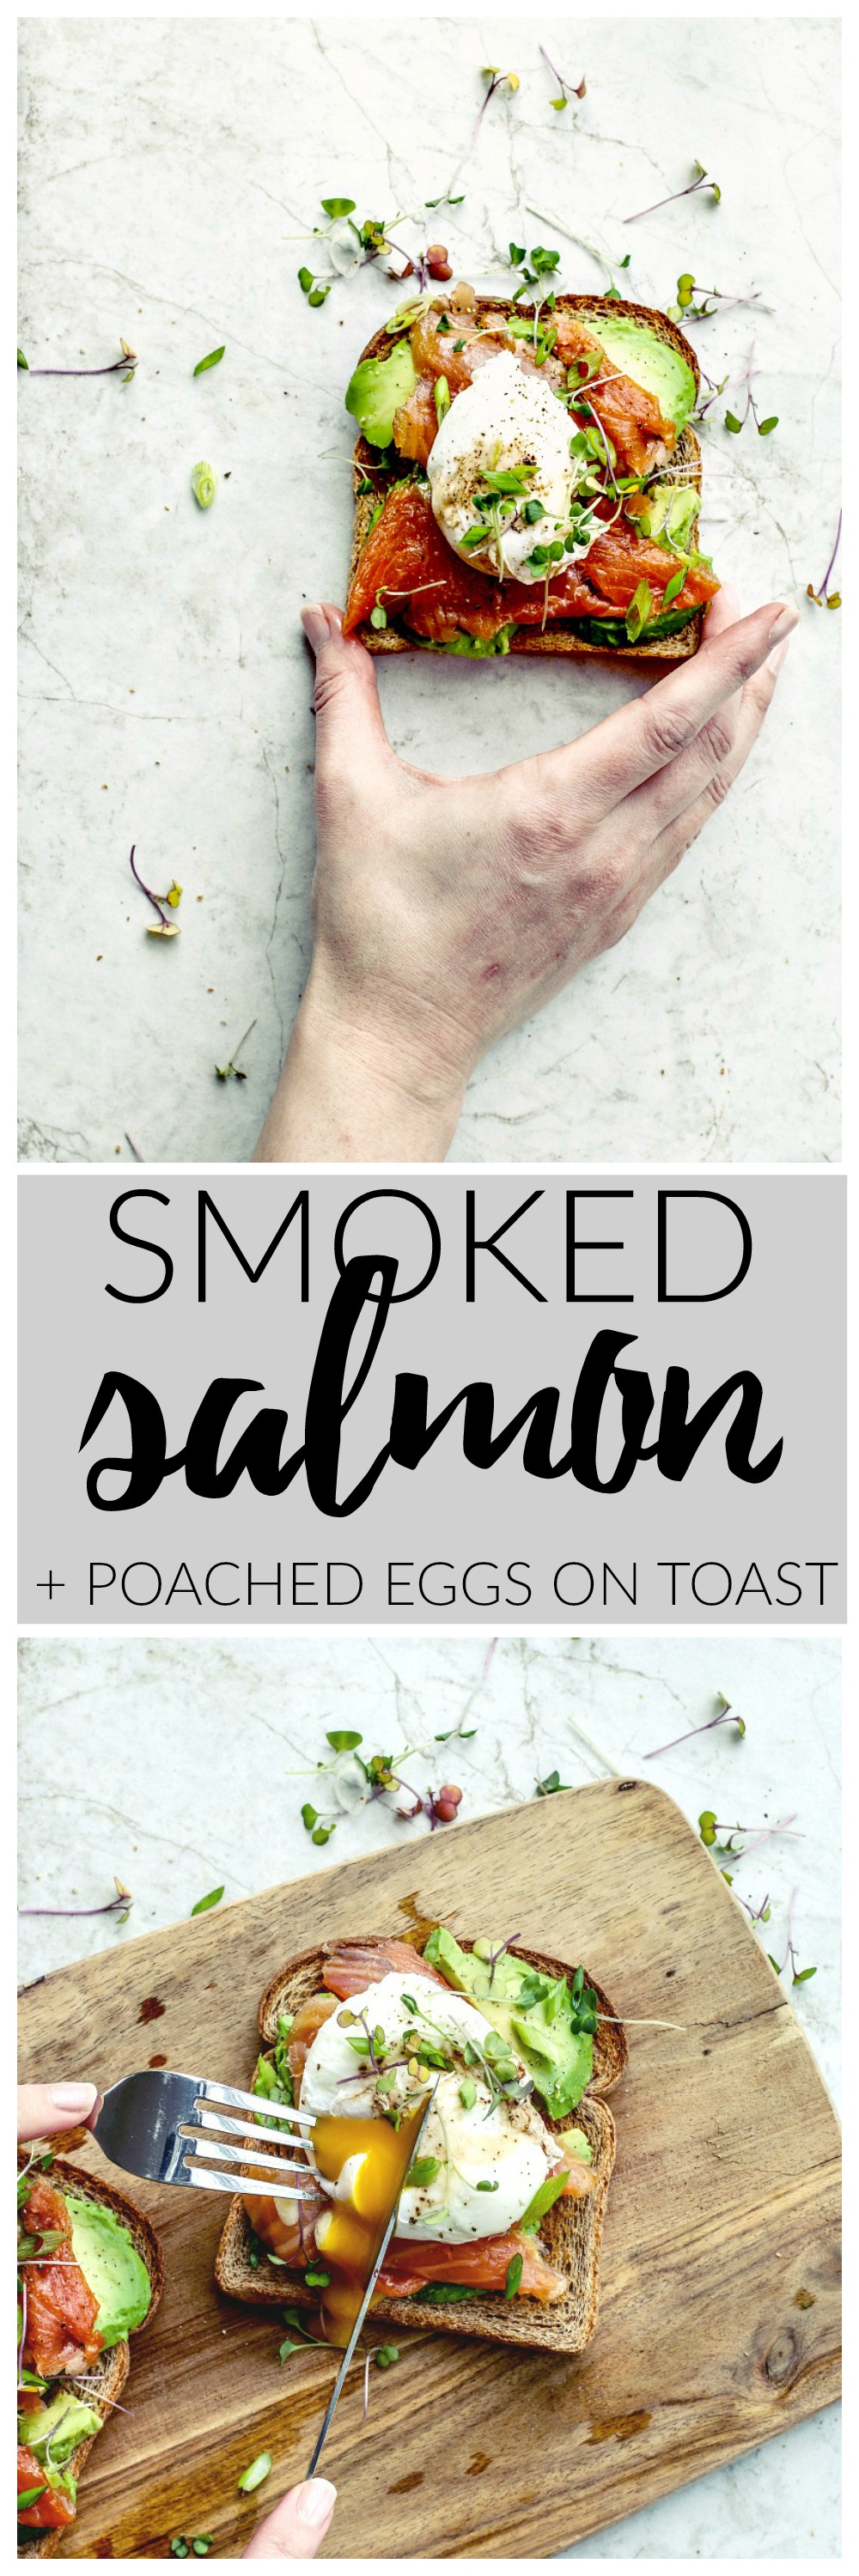 Smoked Salmon With Poached Eggs on Toast | Killing Thyme